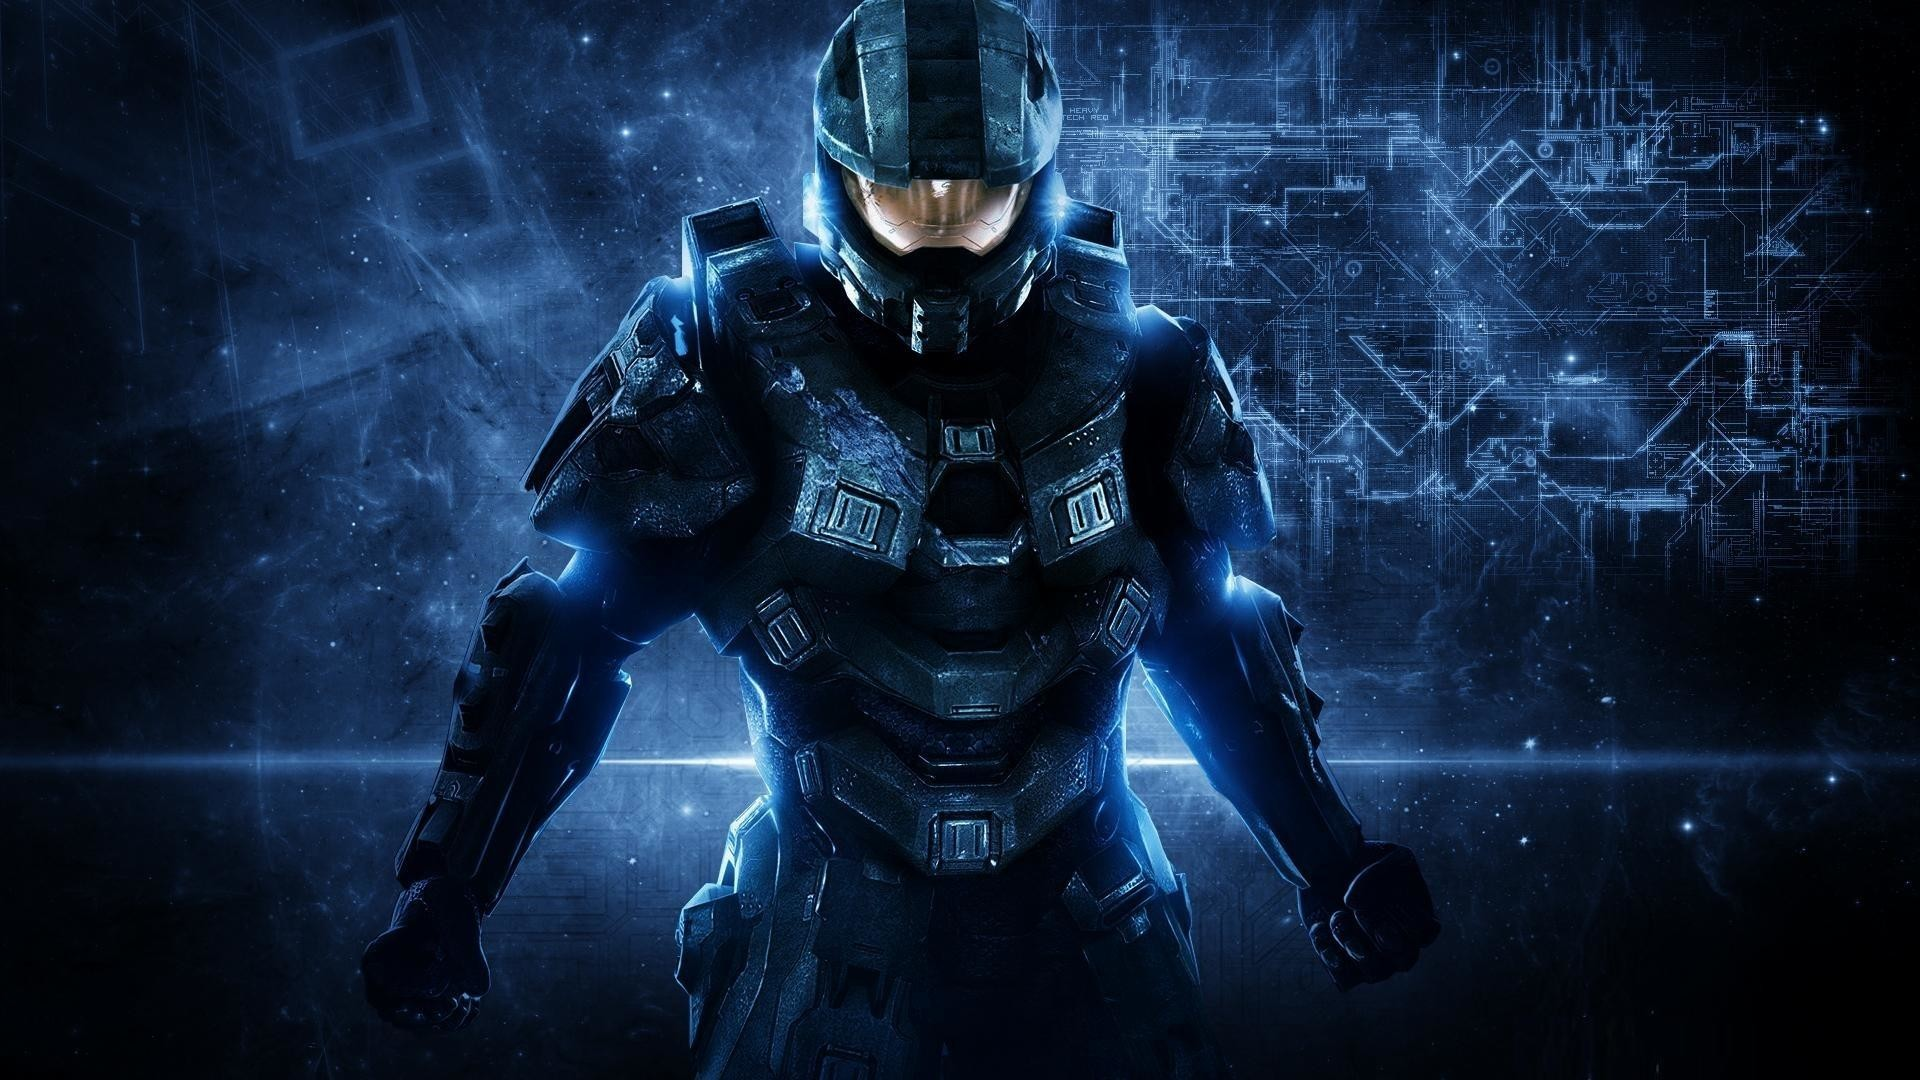 halo-5-hd-background-backgrounds